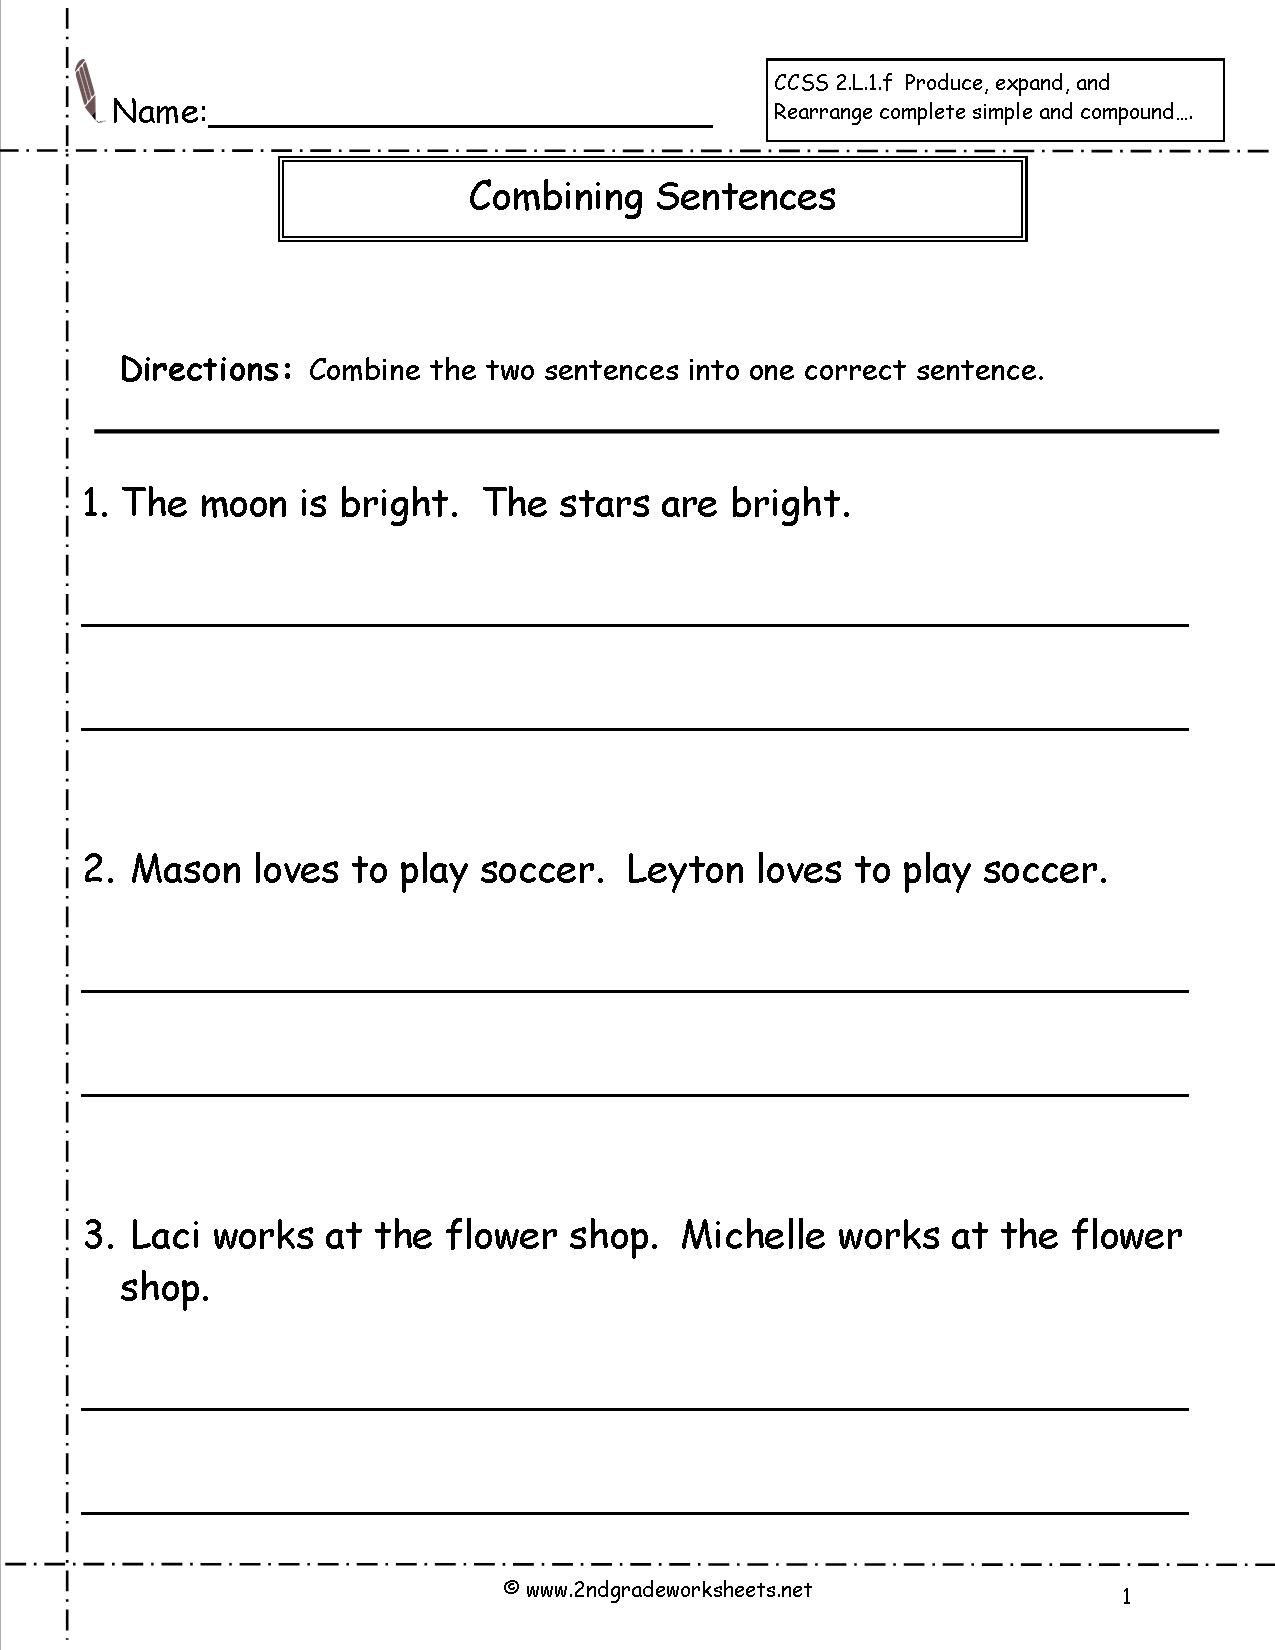 18 Best Images Of Combining Sentences Worksheets 3rd Grade